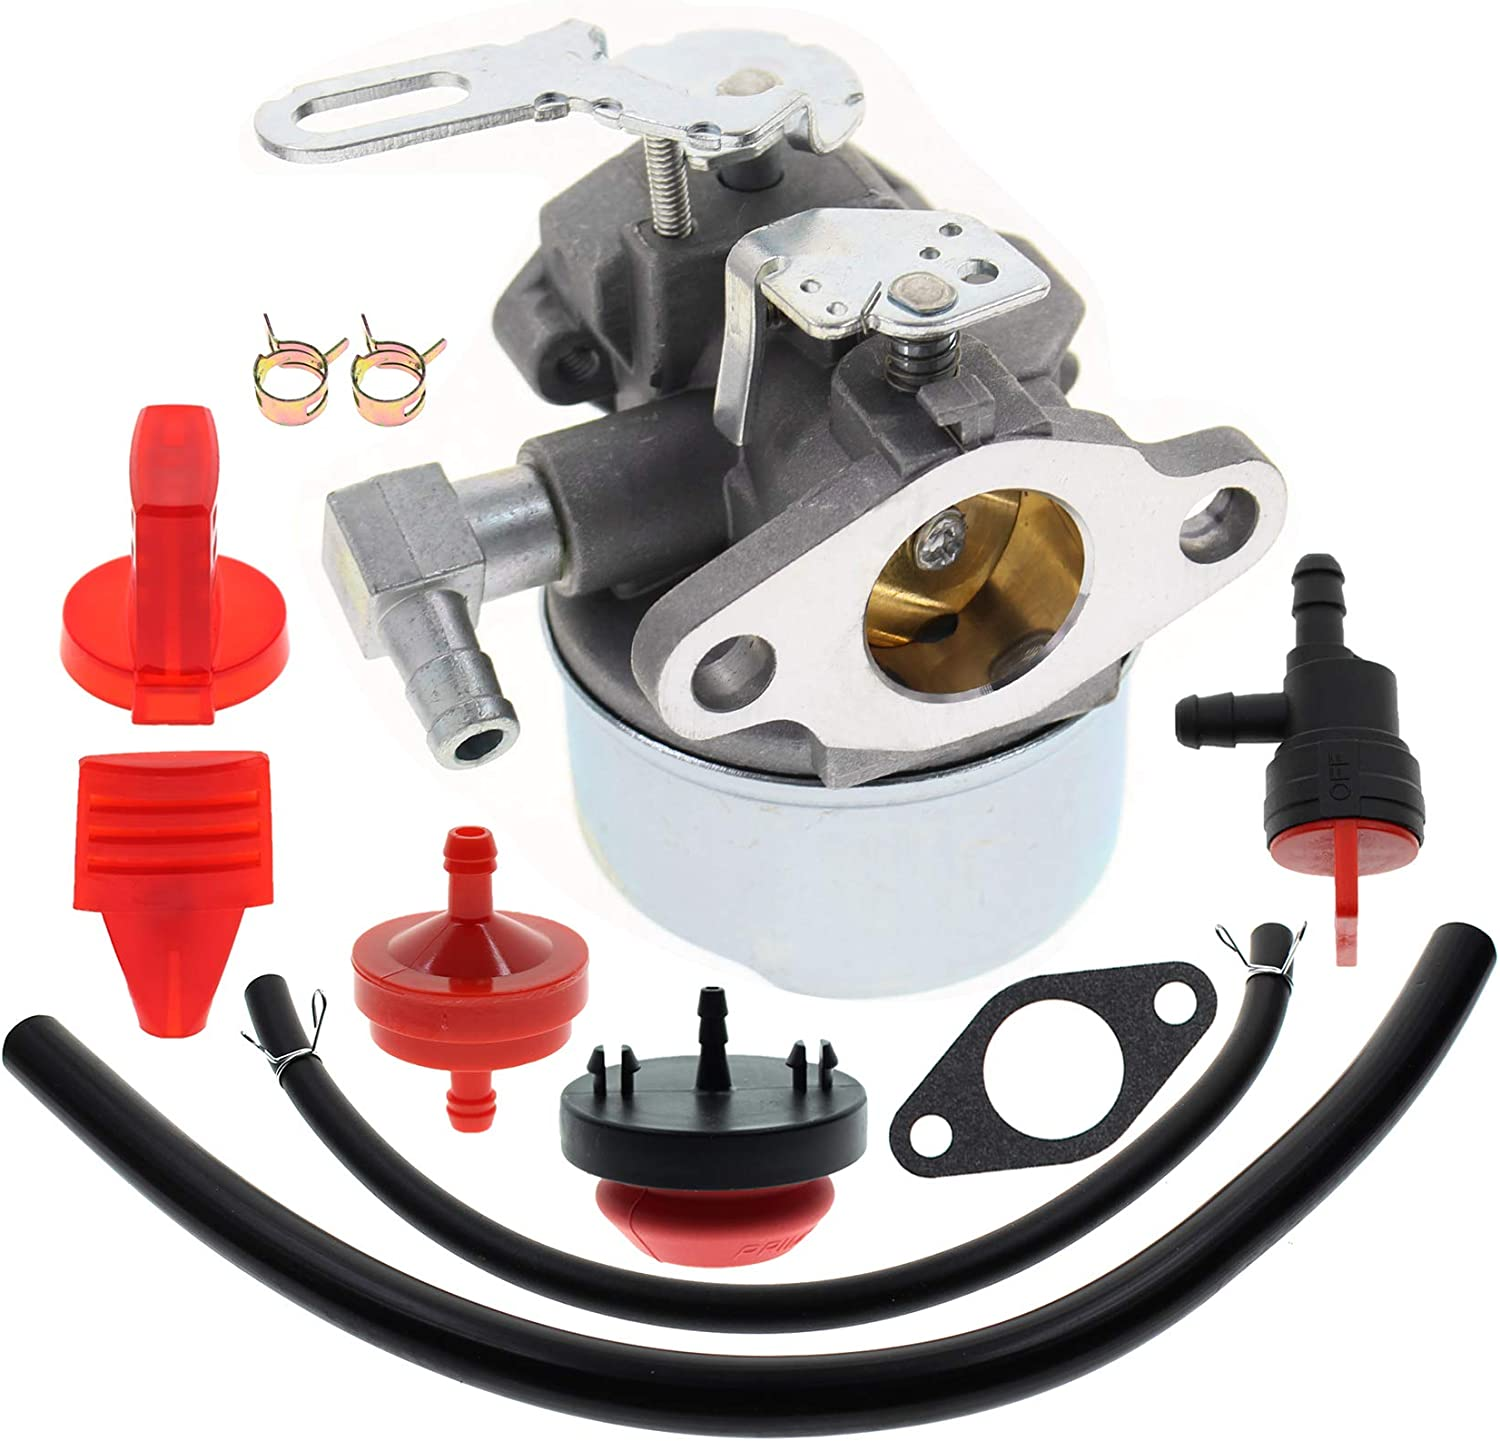 AUTOKAY 1 year warranty 640084B Carburetor Carb with Max 60% OFF Mounting Gasket Fuel Line P